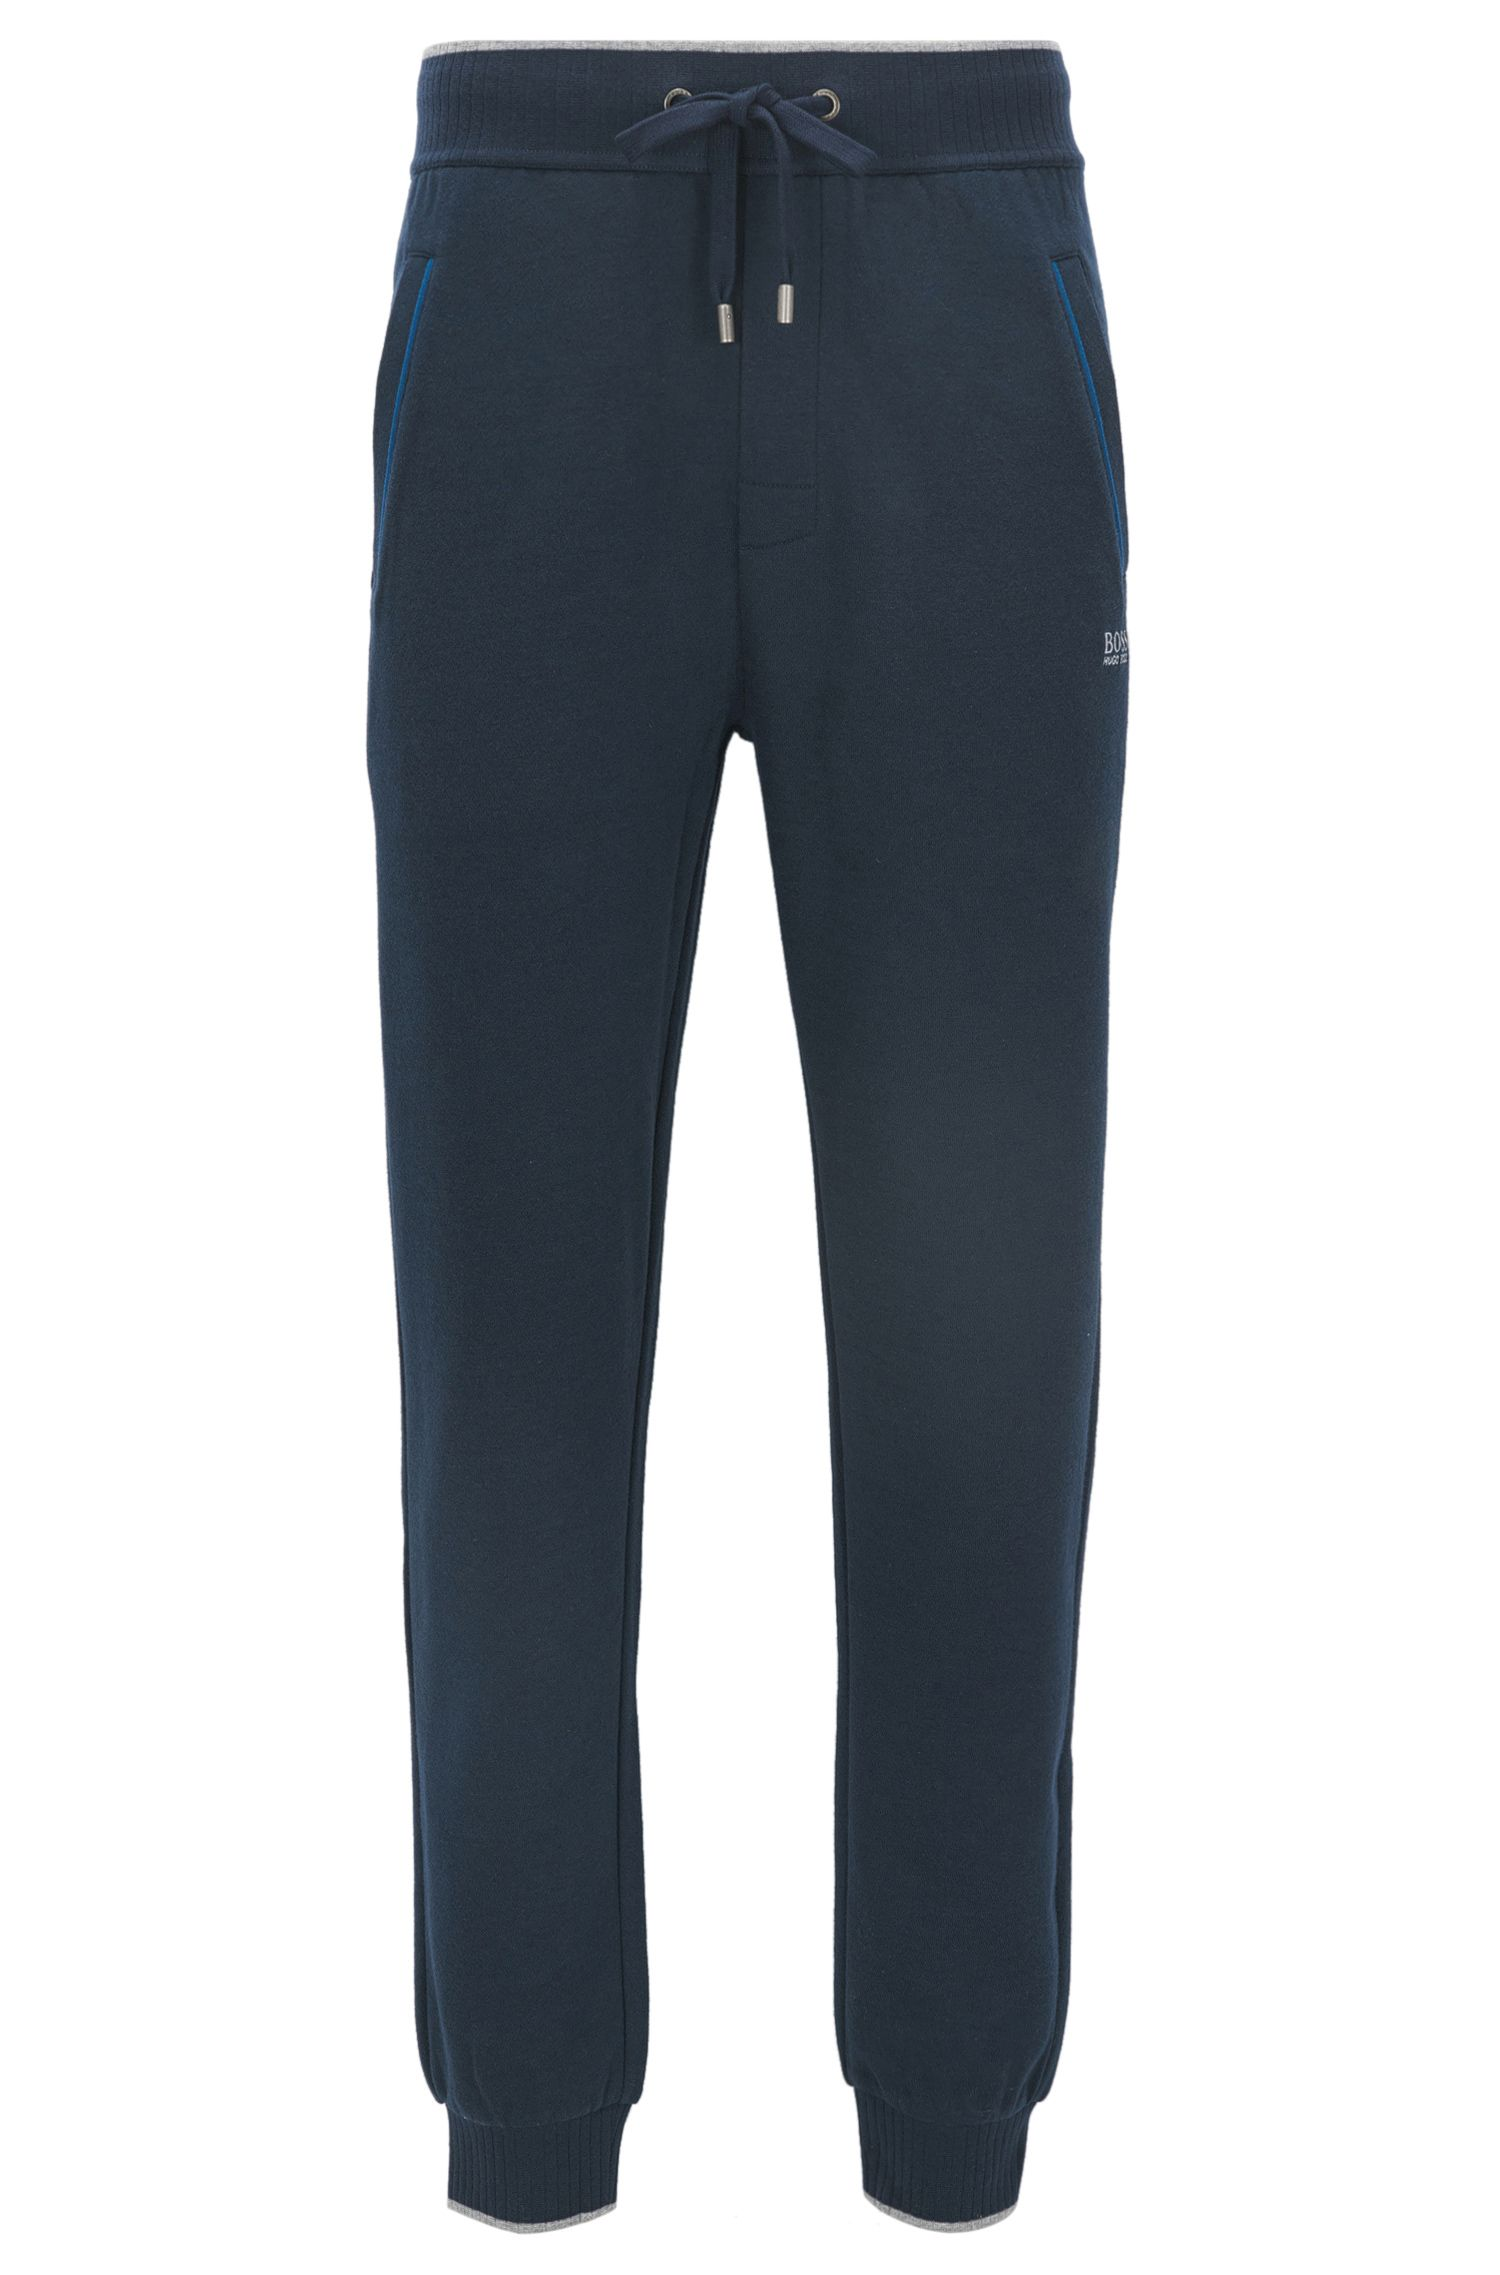 Pantalon de jogging en French Terry de coton mélangé